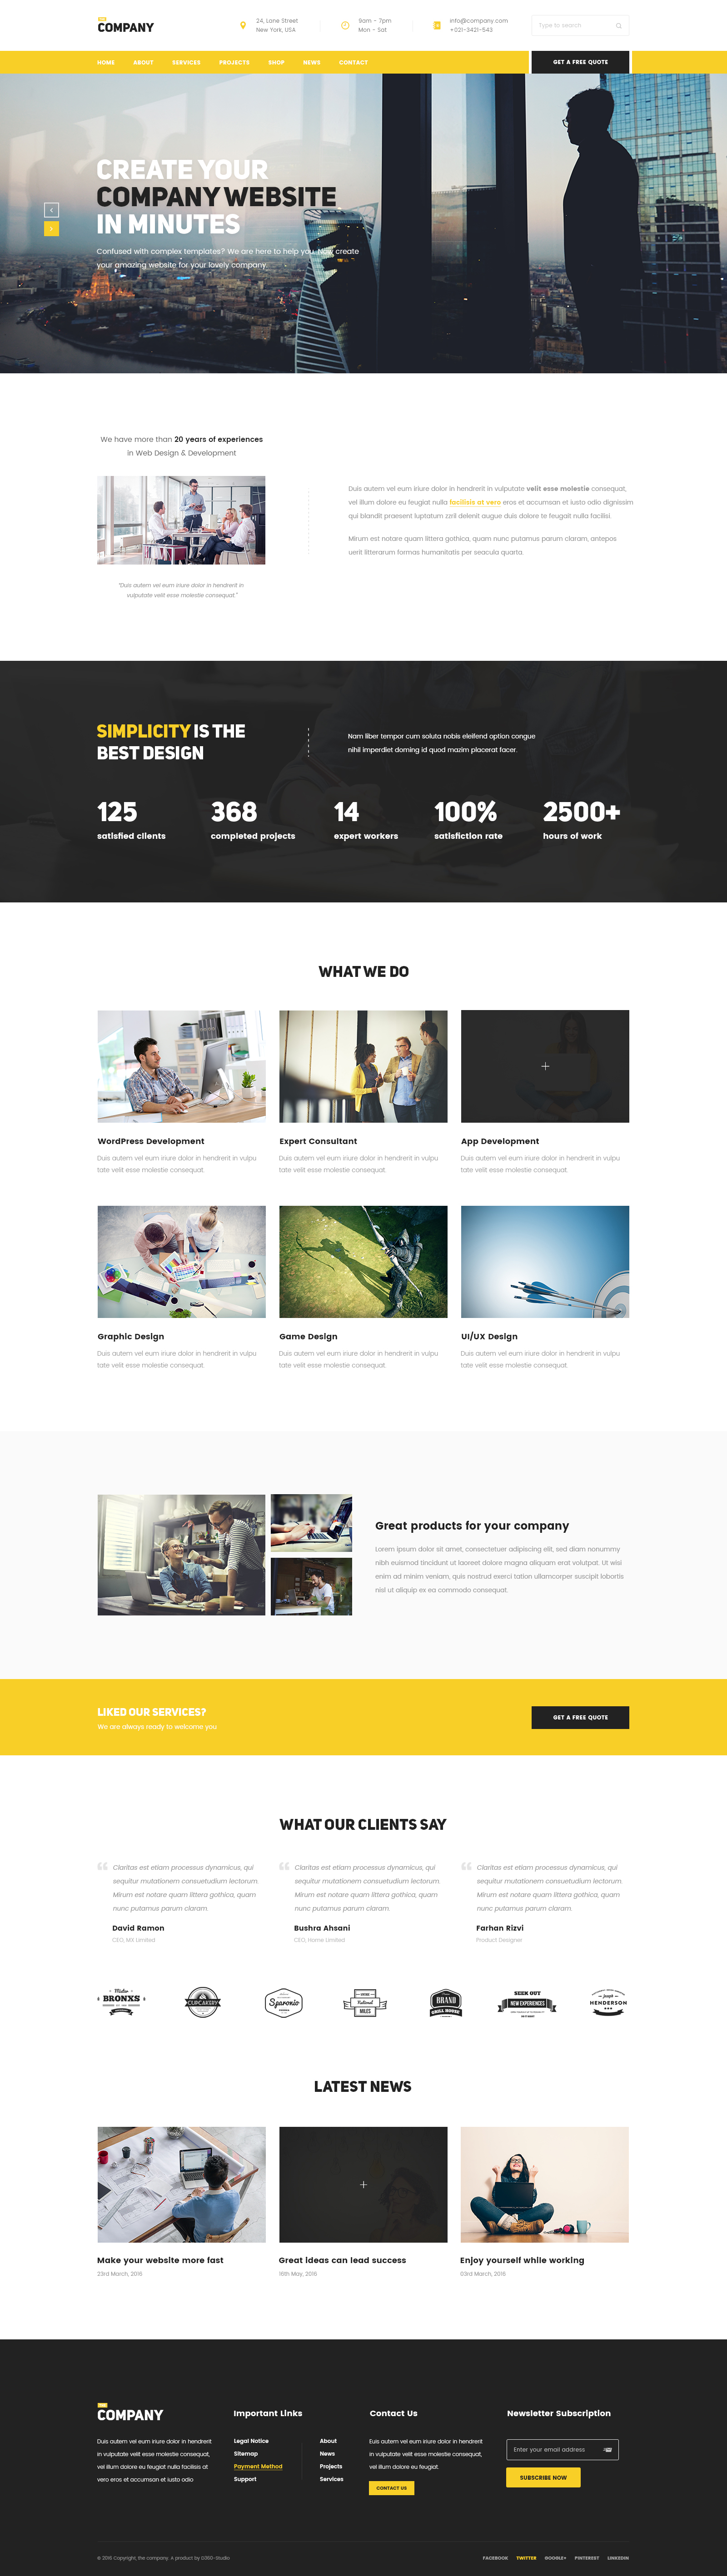 The Company Multipurpose PSD Template For Any Company By TeamDhrubok - Web development company website template